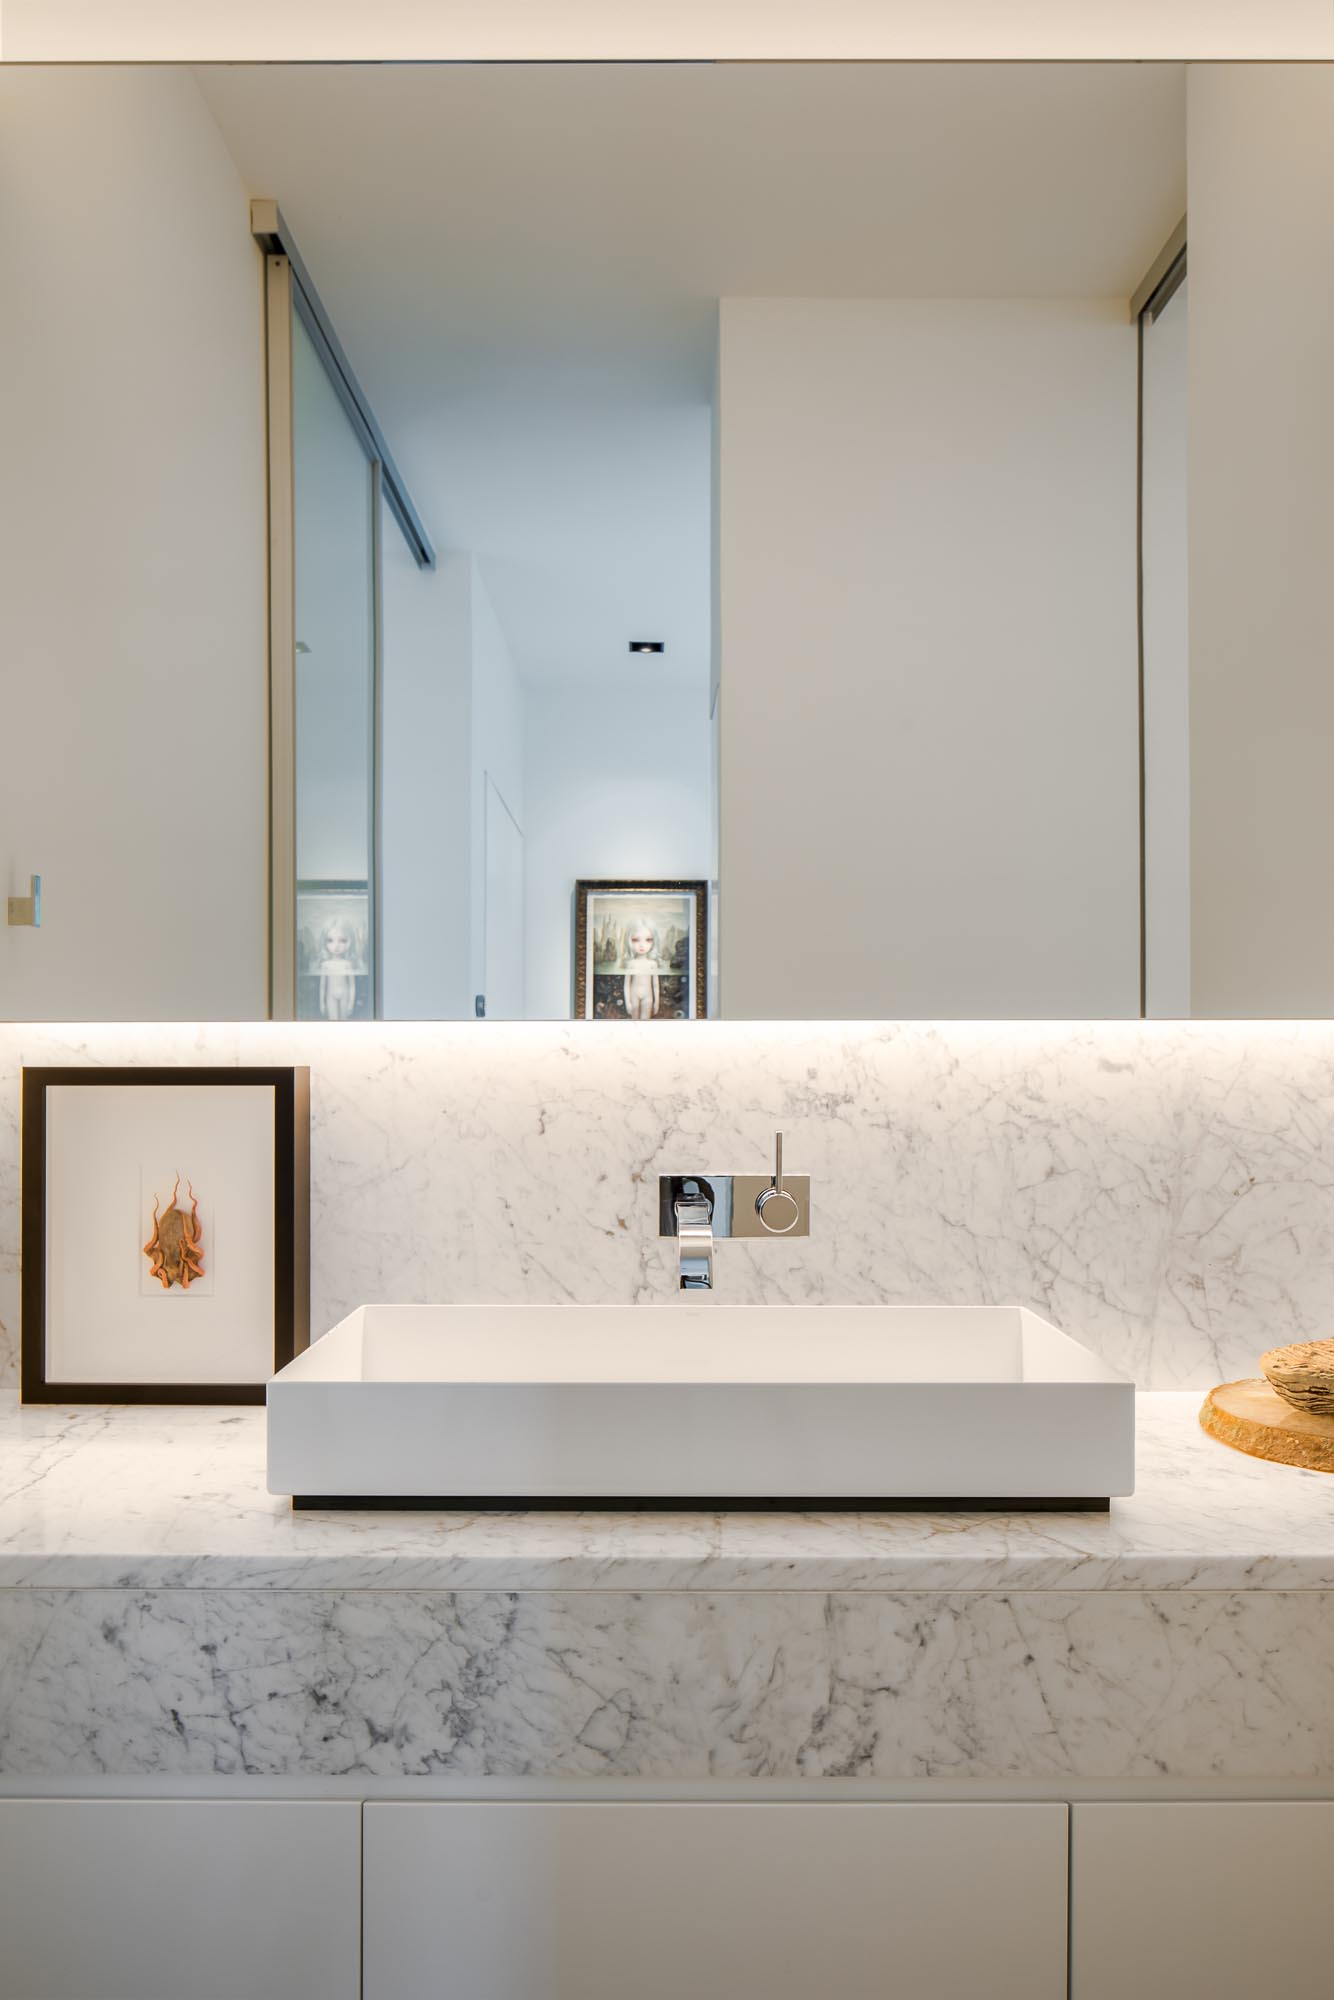 This modern en-suite bathroom has a backlit mirror, a floating vanity, and a walk-in shower with a shelving niche.